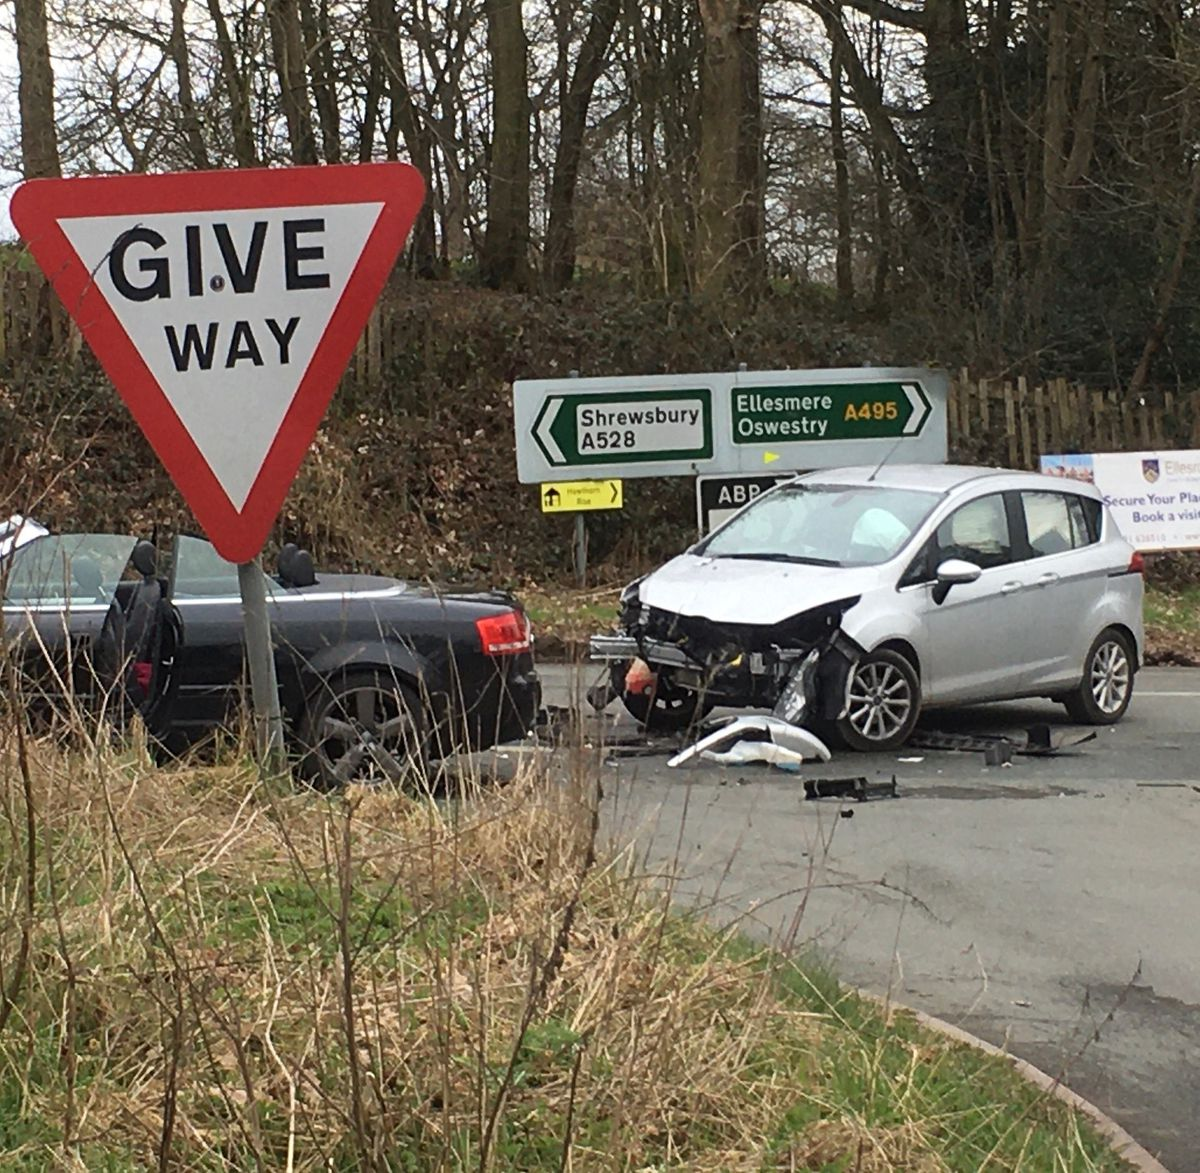 The road was temporarily closed following the crash. Pic: Mike Ford